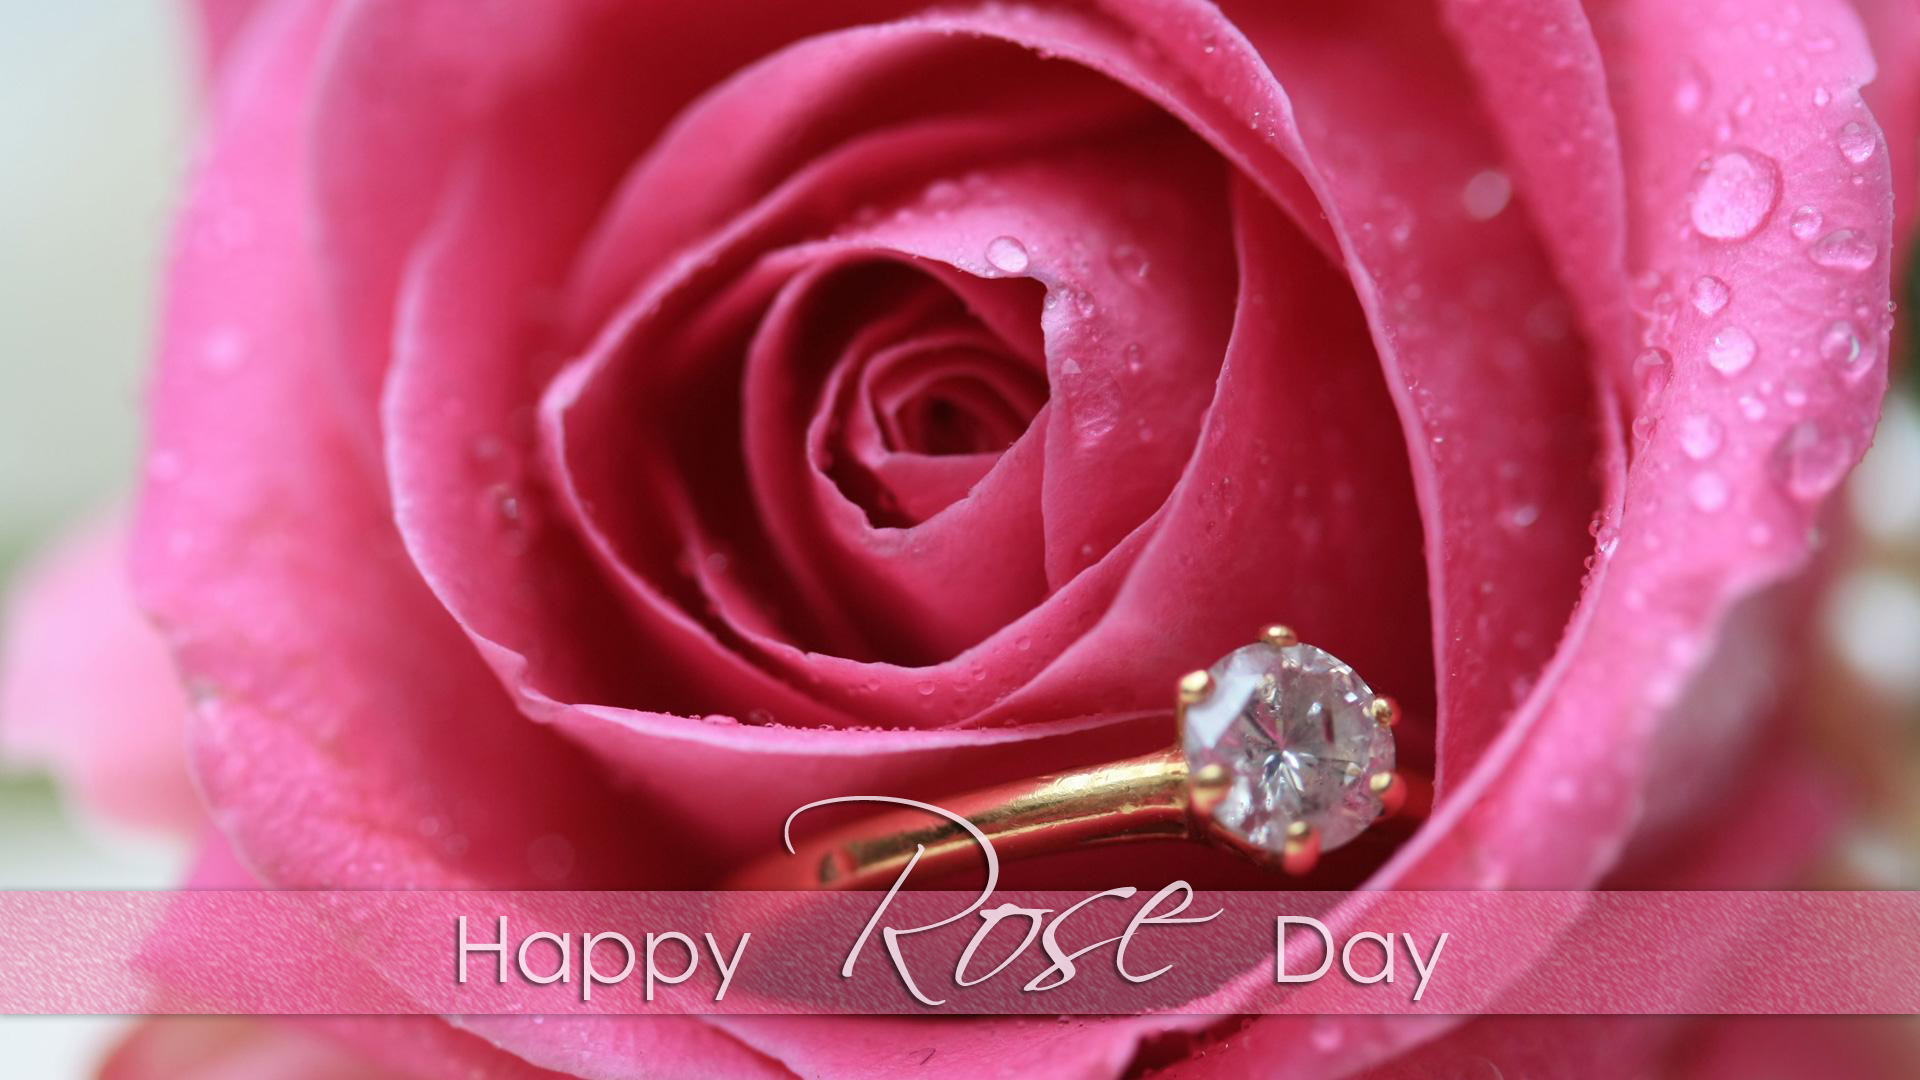 Blingee Cute Wallpaper Rose Day Images For Whatsapp Dp Profile Wallpapers Free